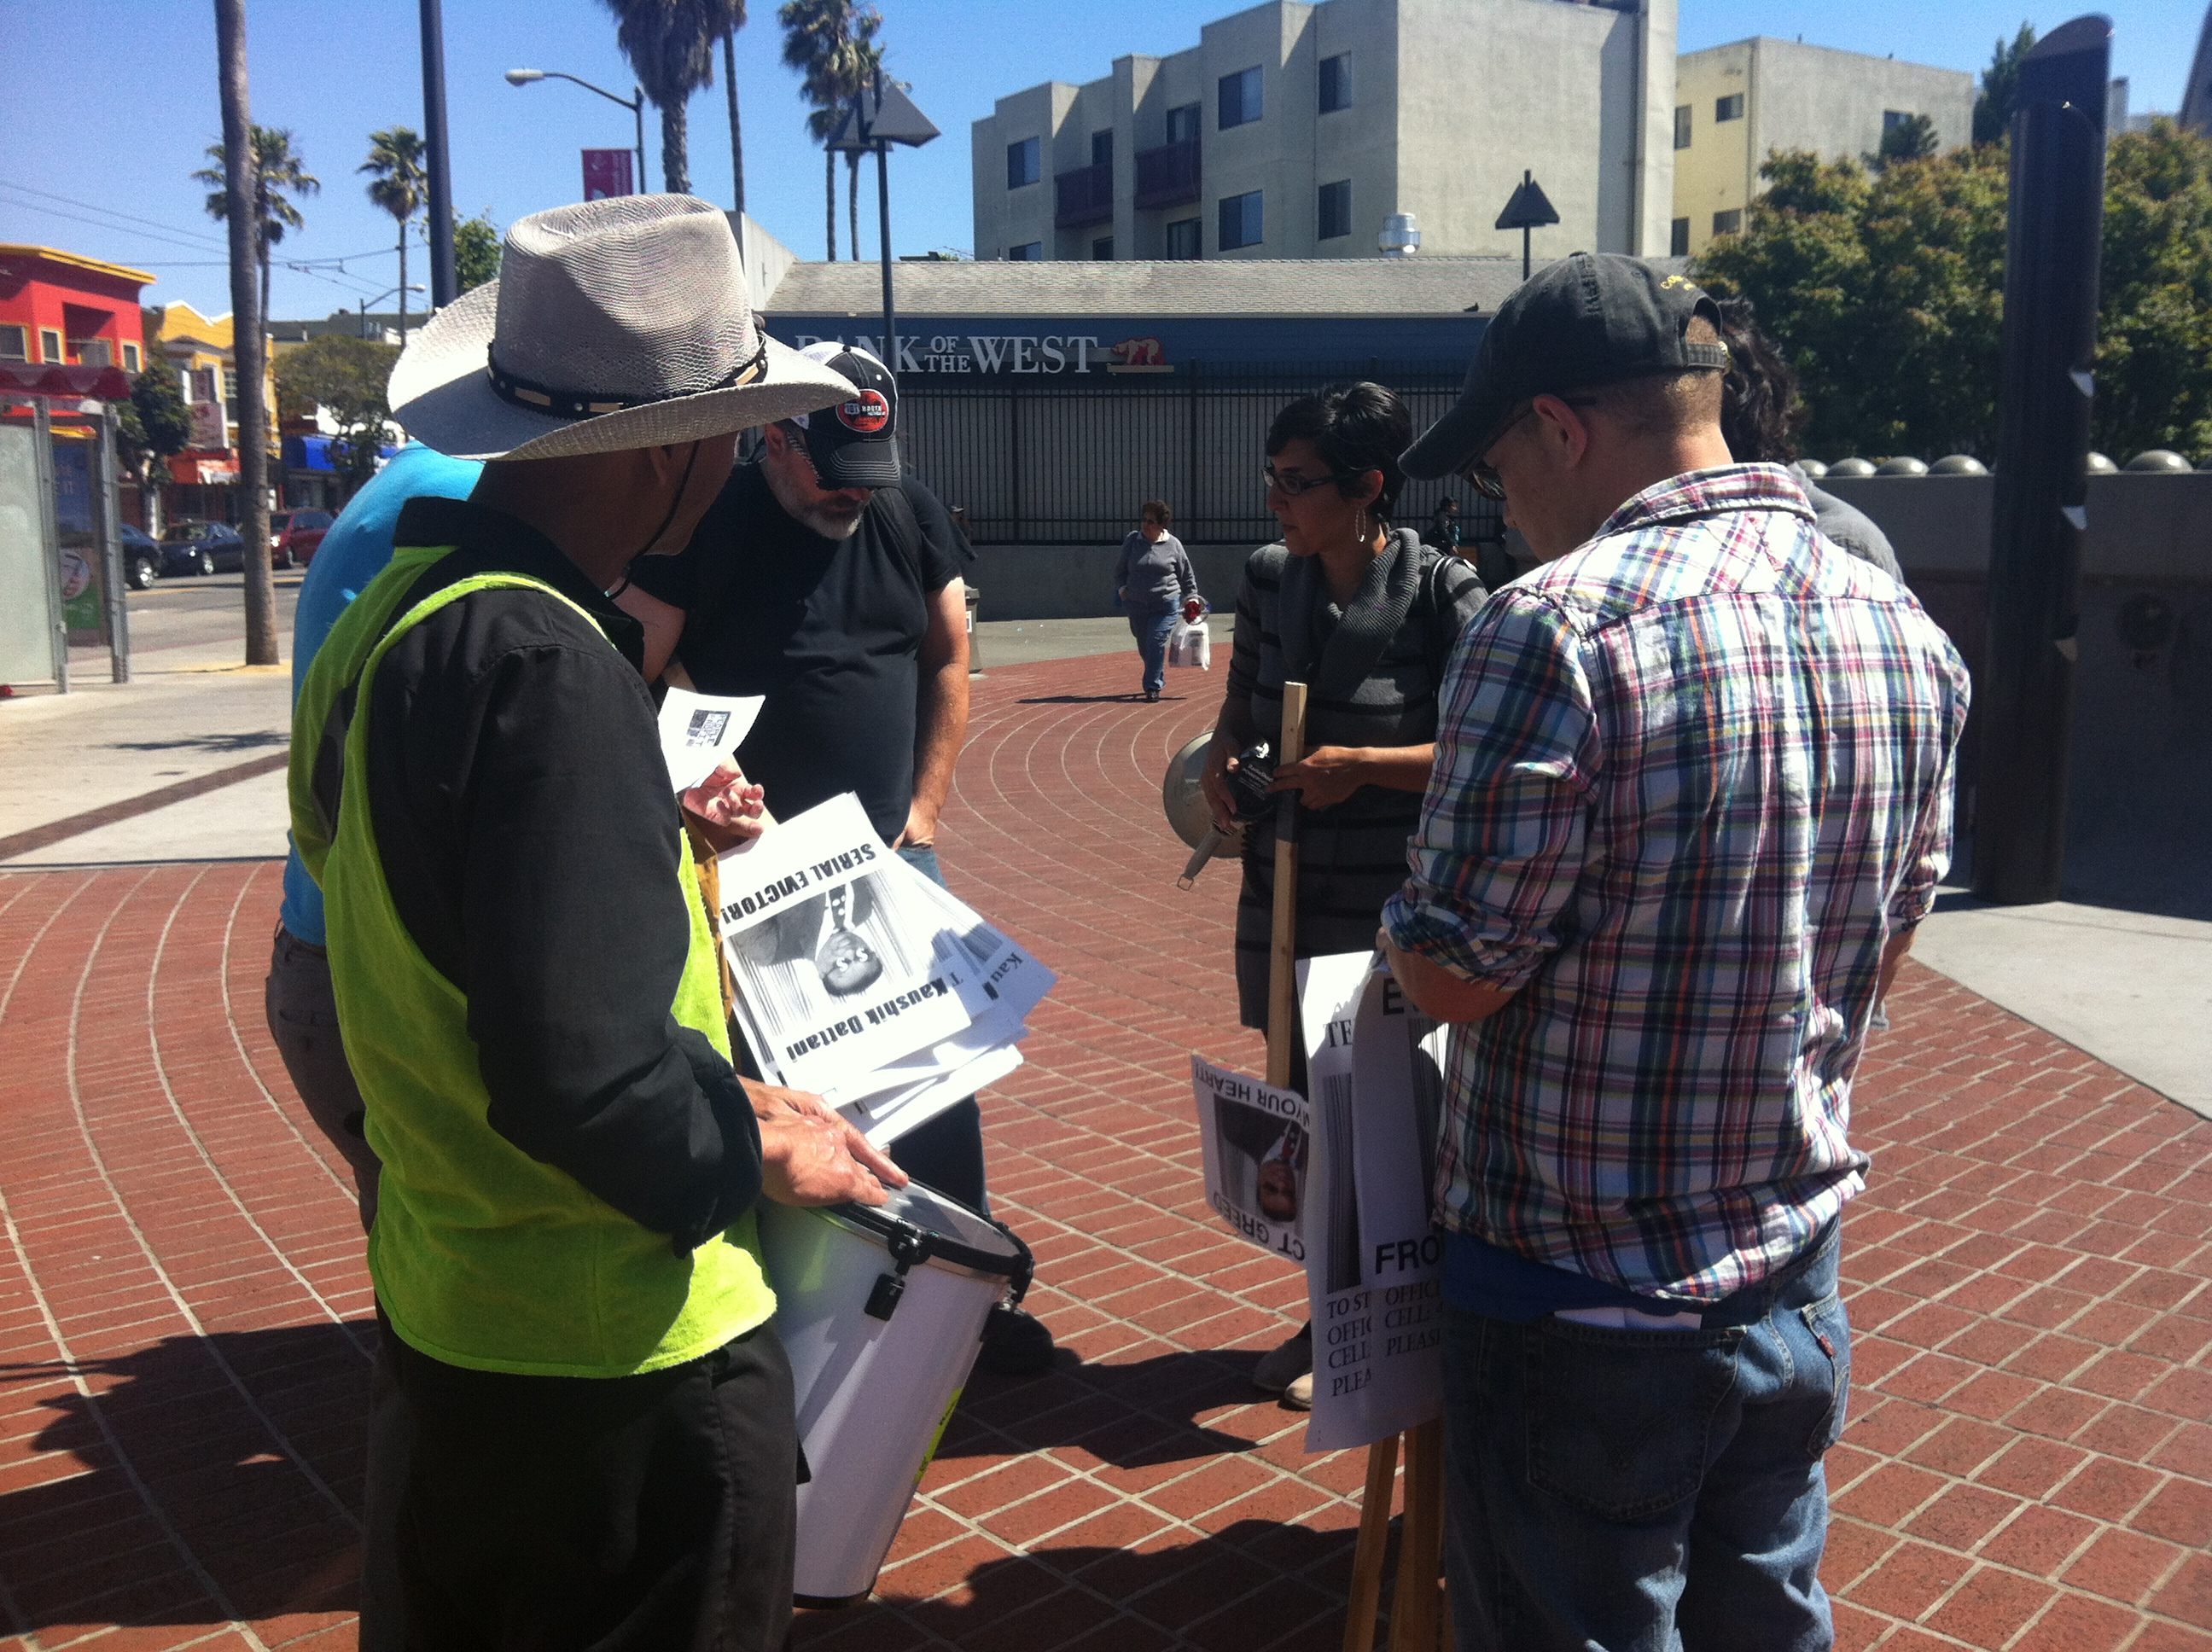 Ellis Act Protesters Take to the Streets Again